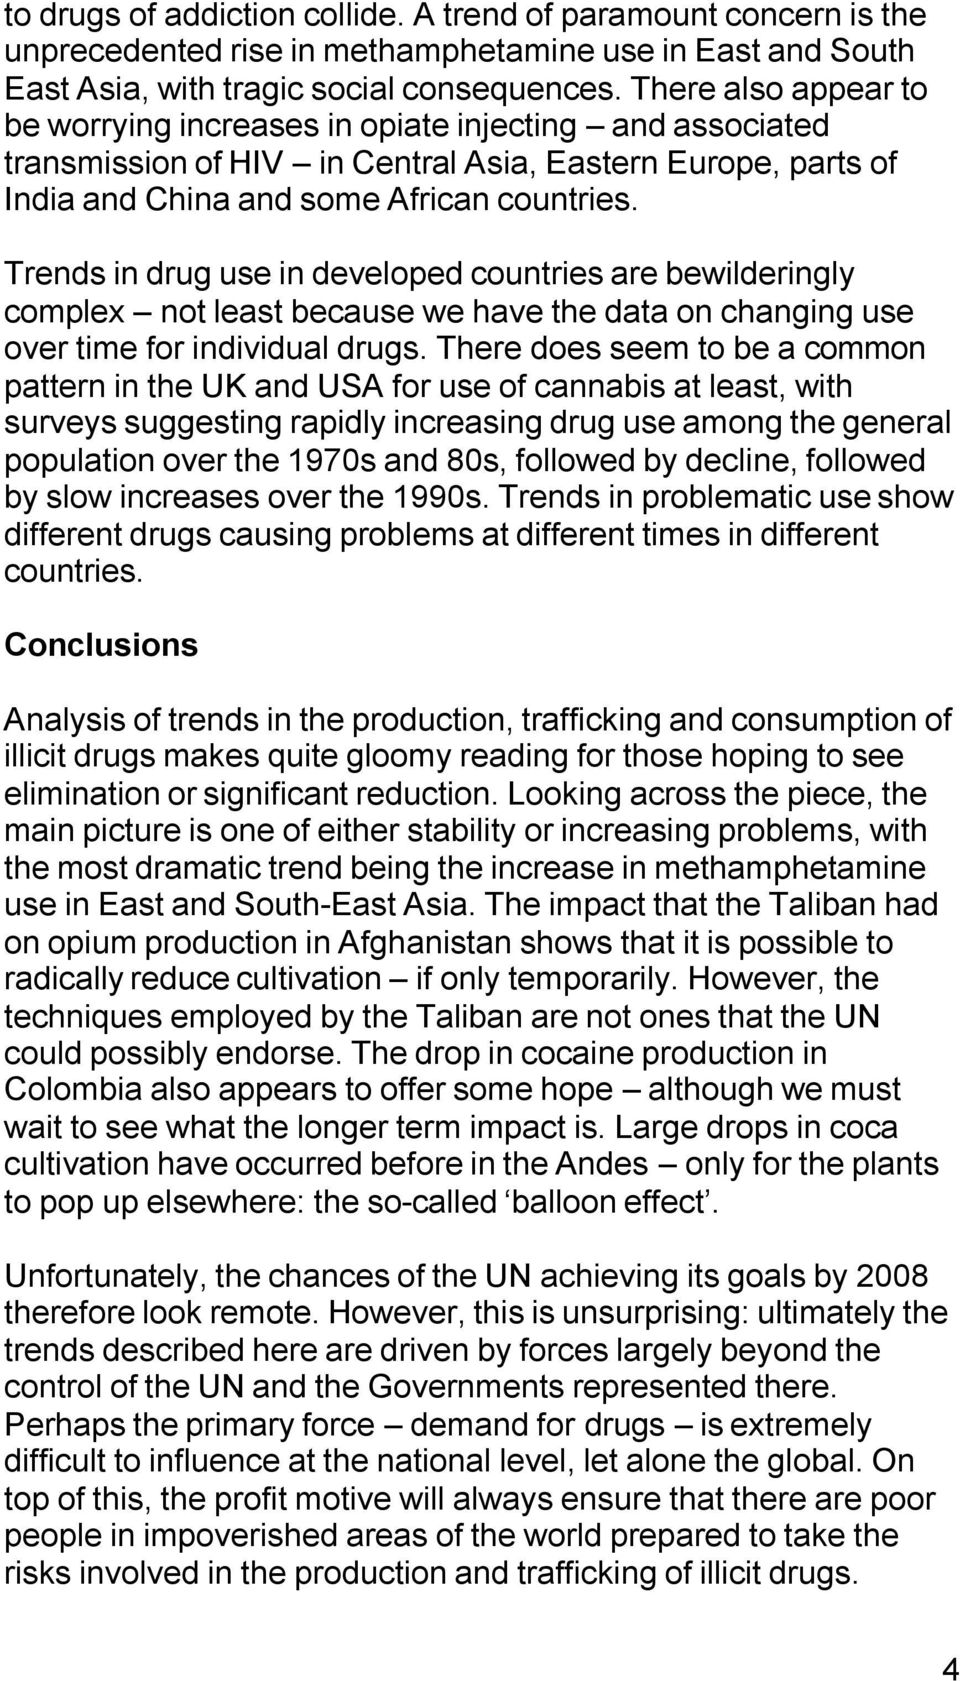 Trends in drug use in developed countries are bewilderingly complex not least because we have the data on changing use over time for individual drugs.